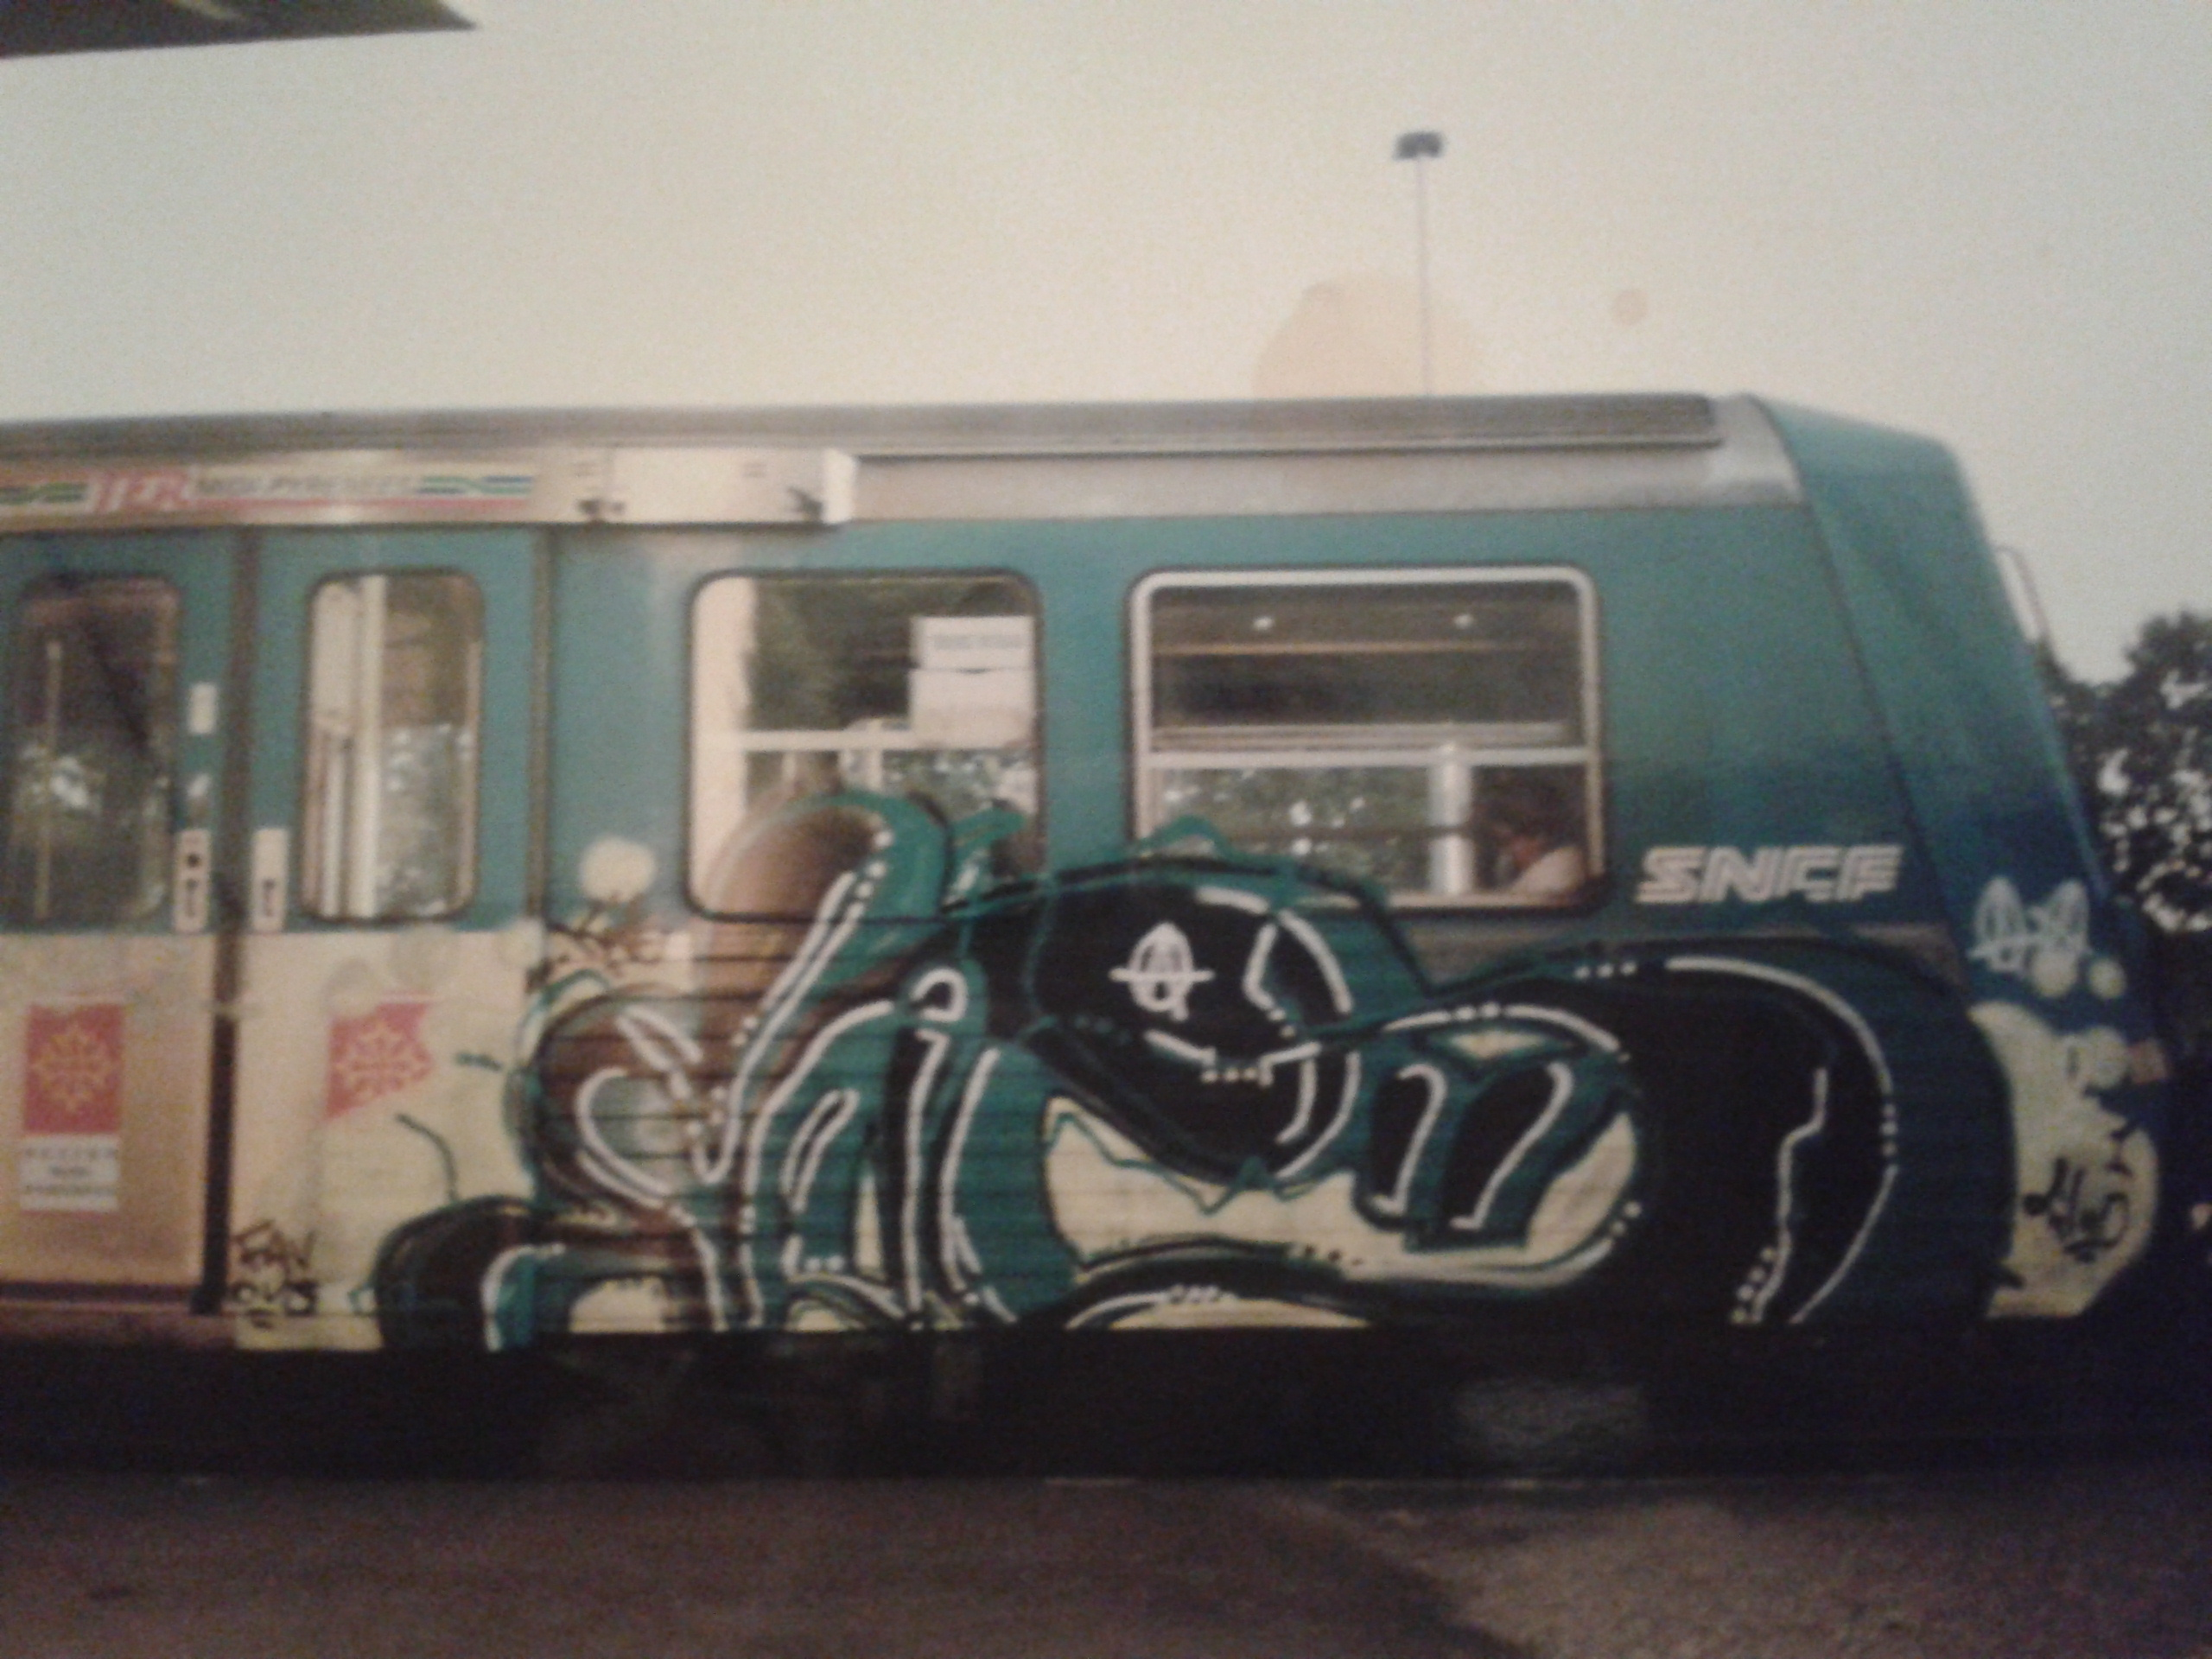 graffeuse-june-montpellier-2003